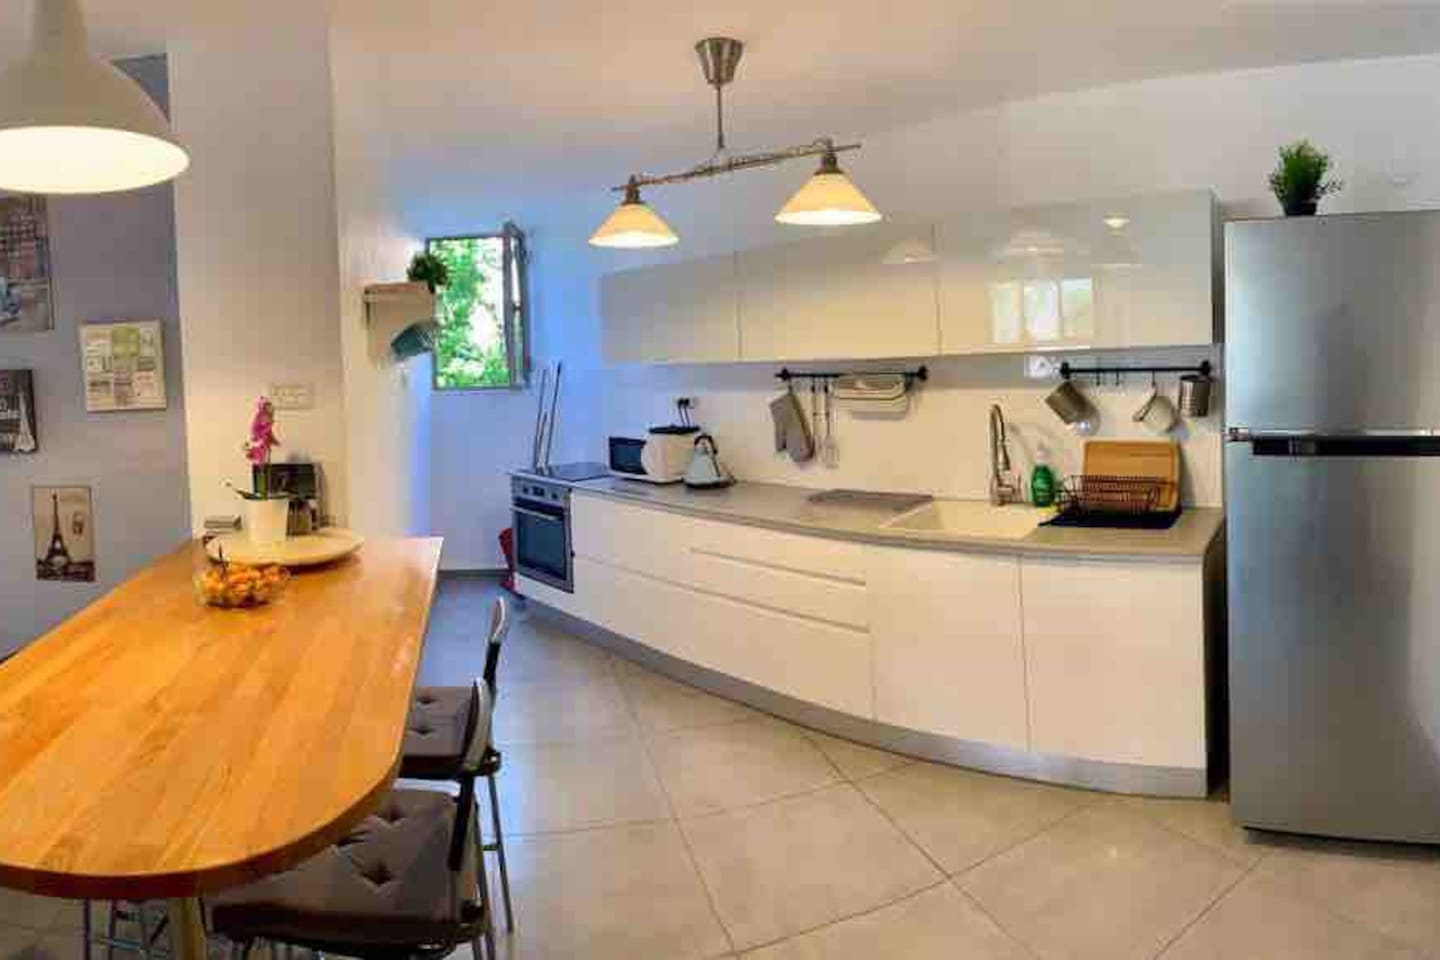 New and well equipped kitchen